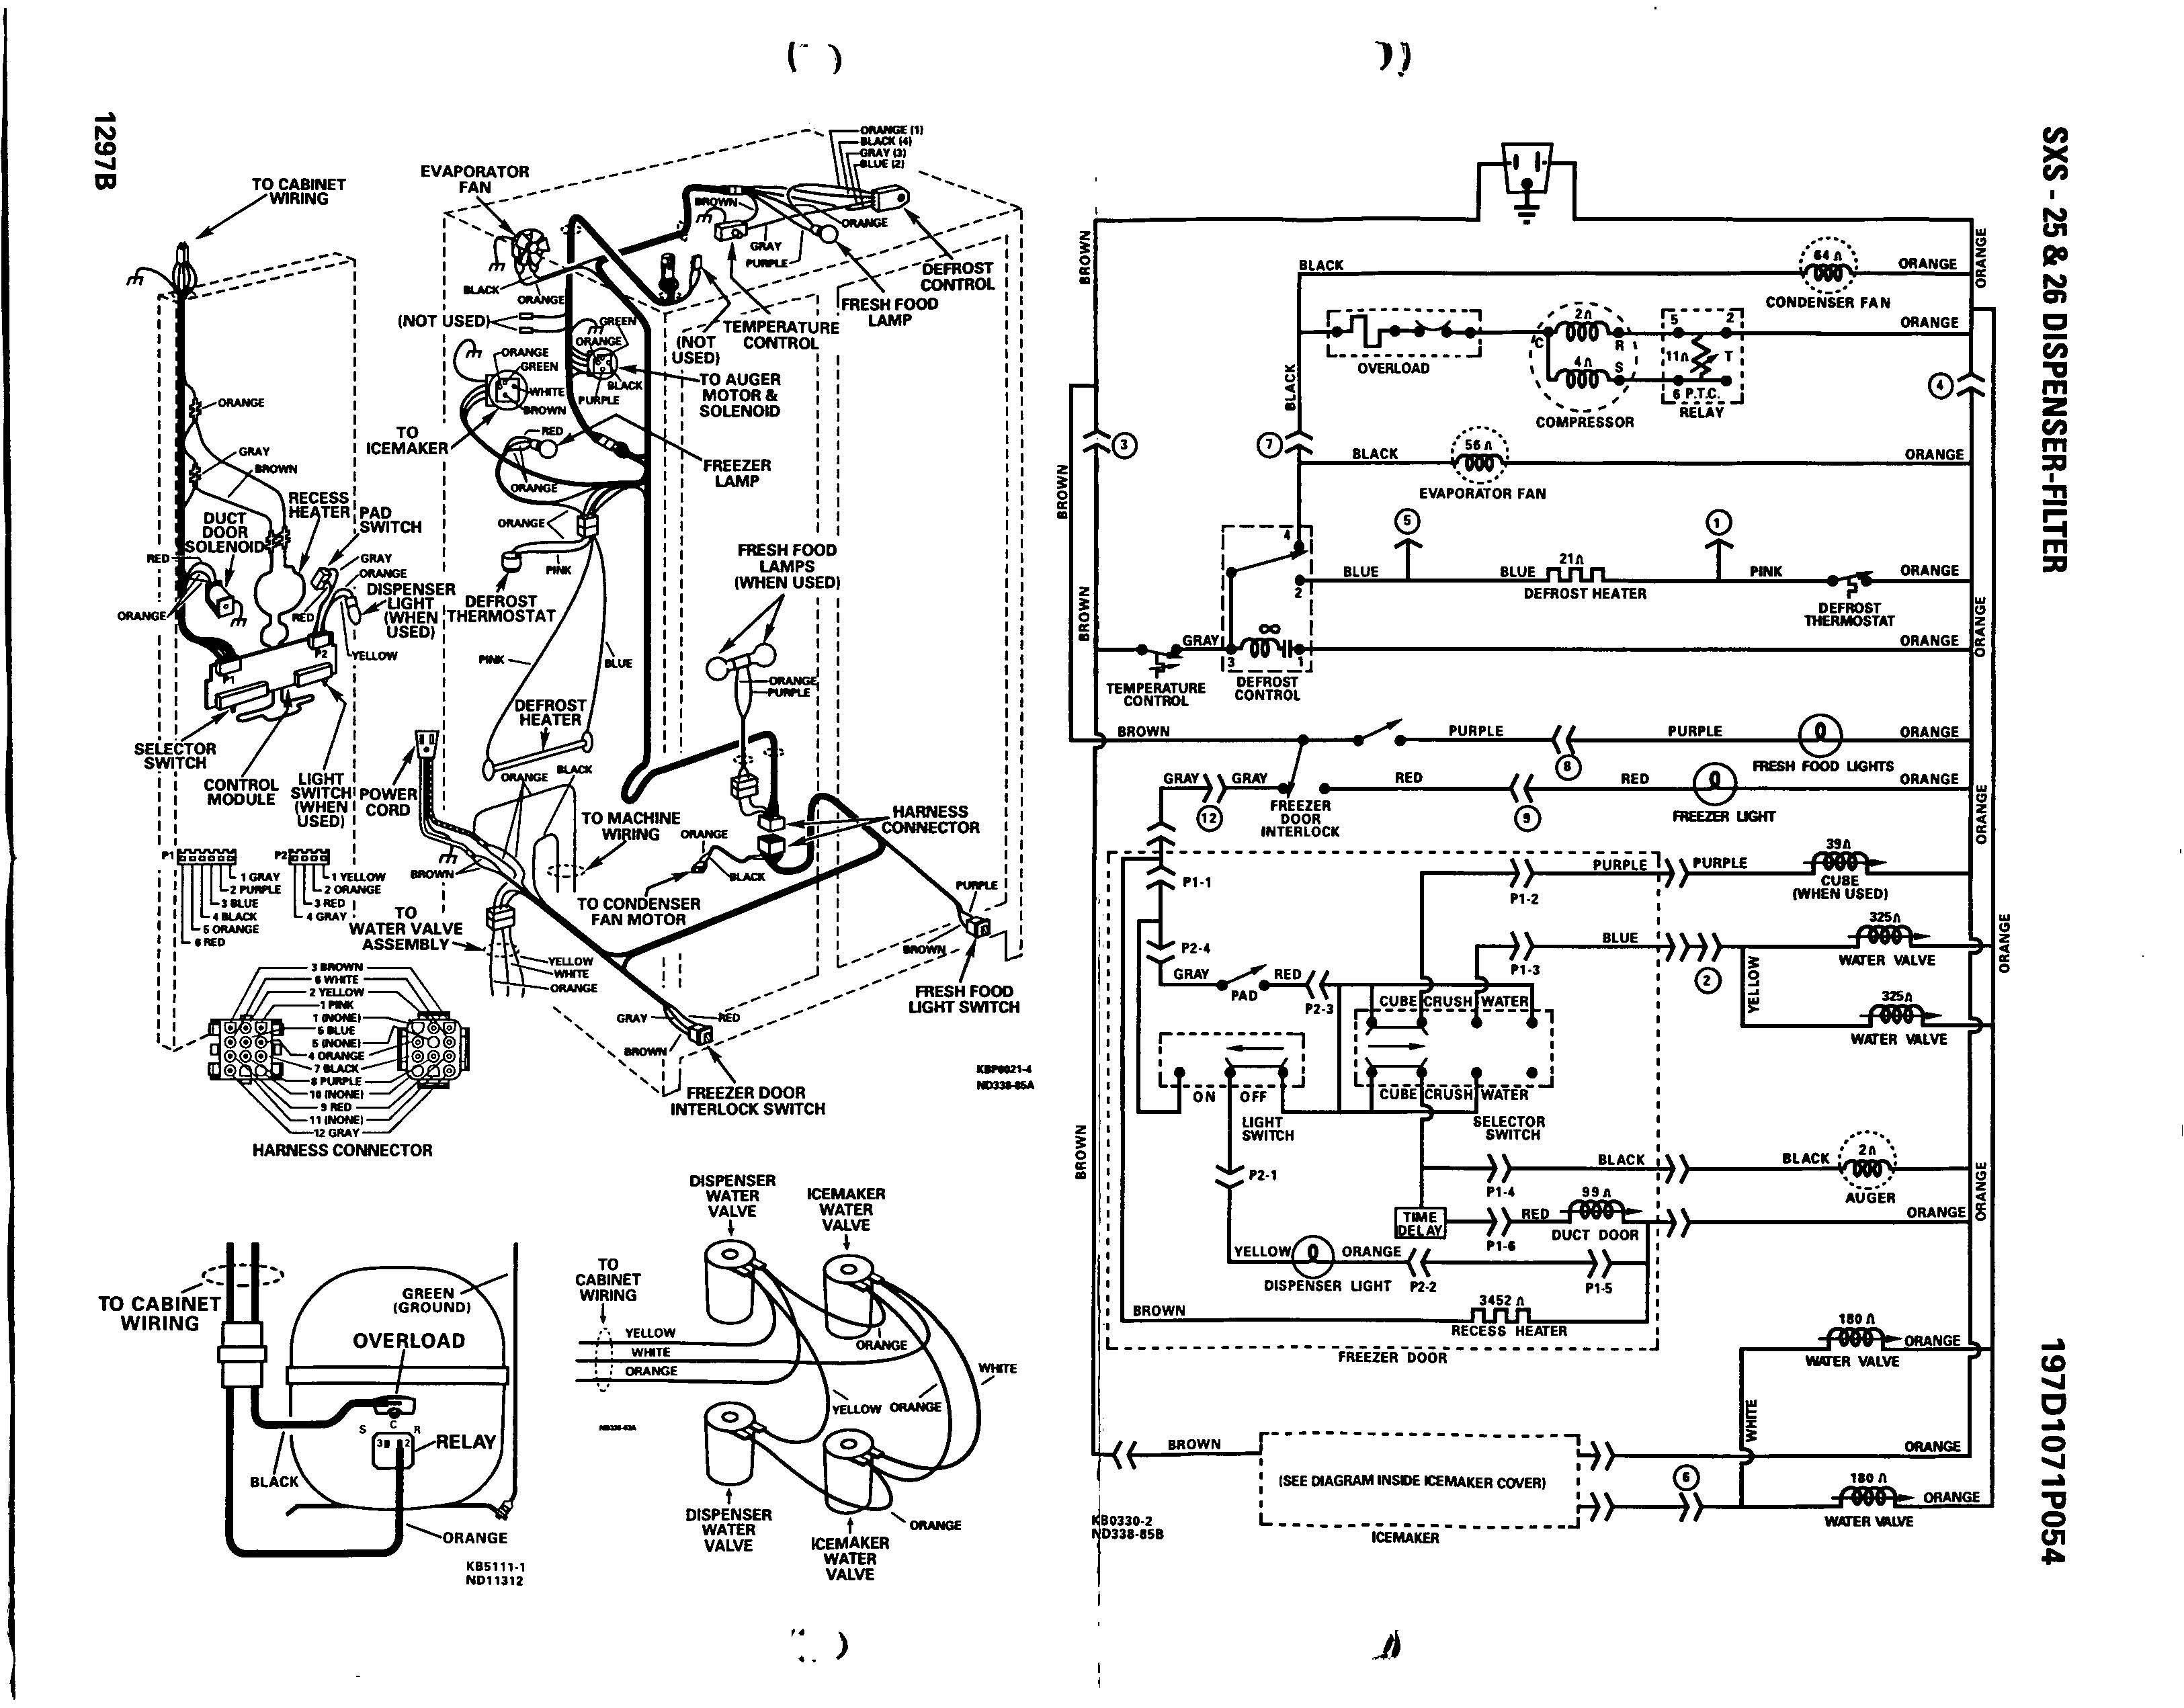 Wiring Diagram For Ge Refrigerator In 2020 Electrical Wiring Diagram Diagram Trailer Wiring Diagram